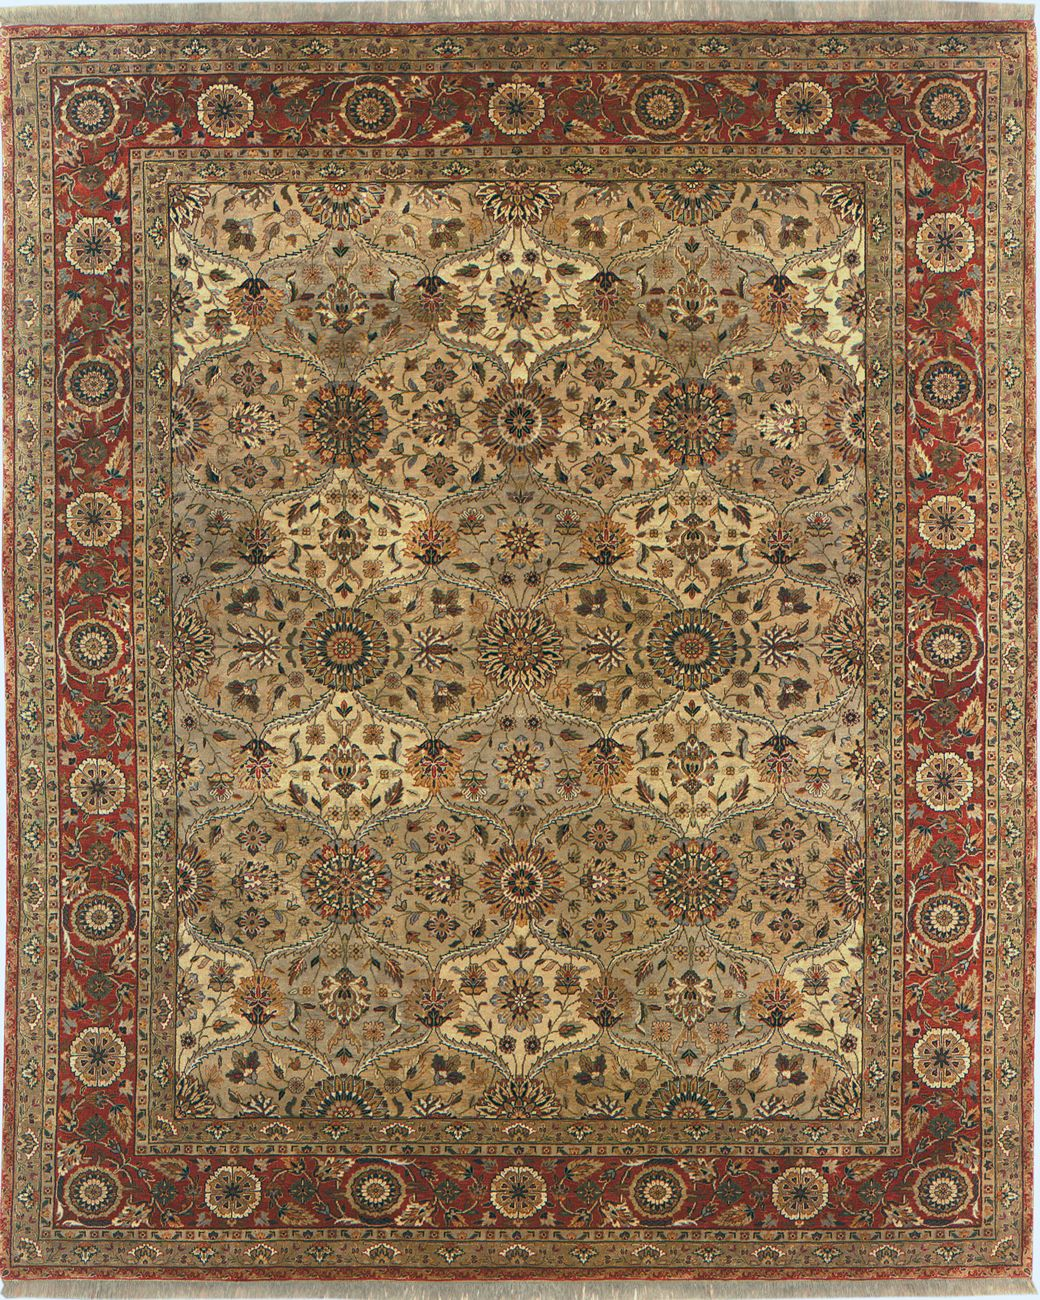 27+ Stickley arts and crafts rugs ideas